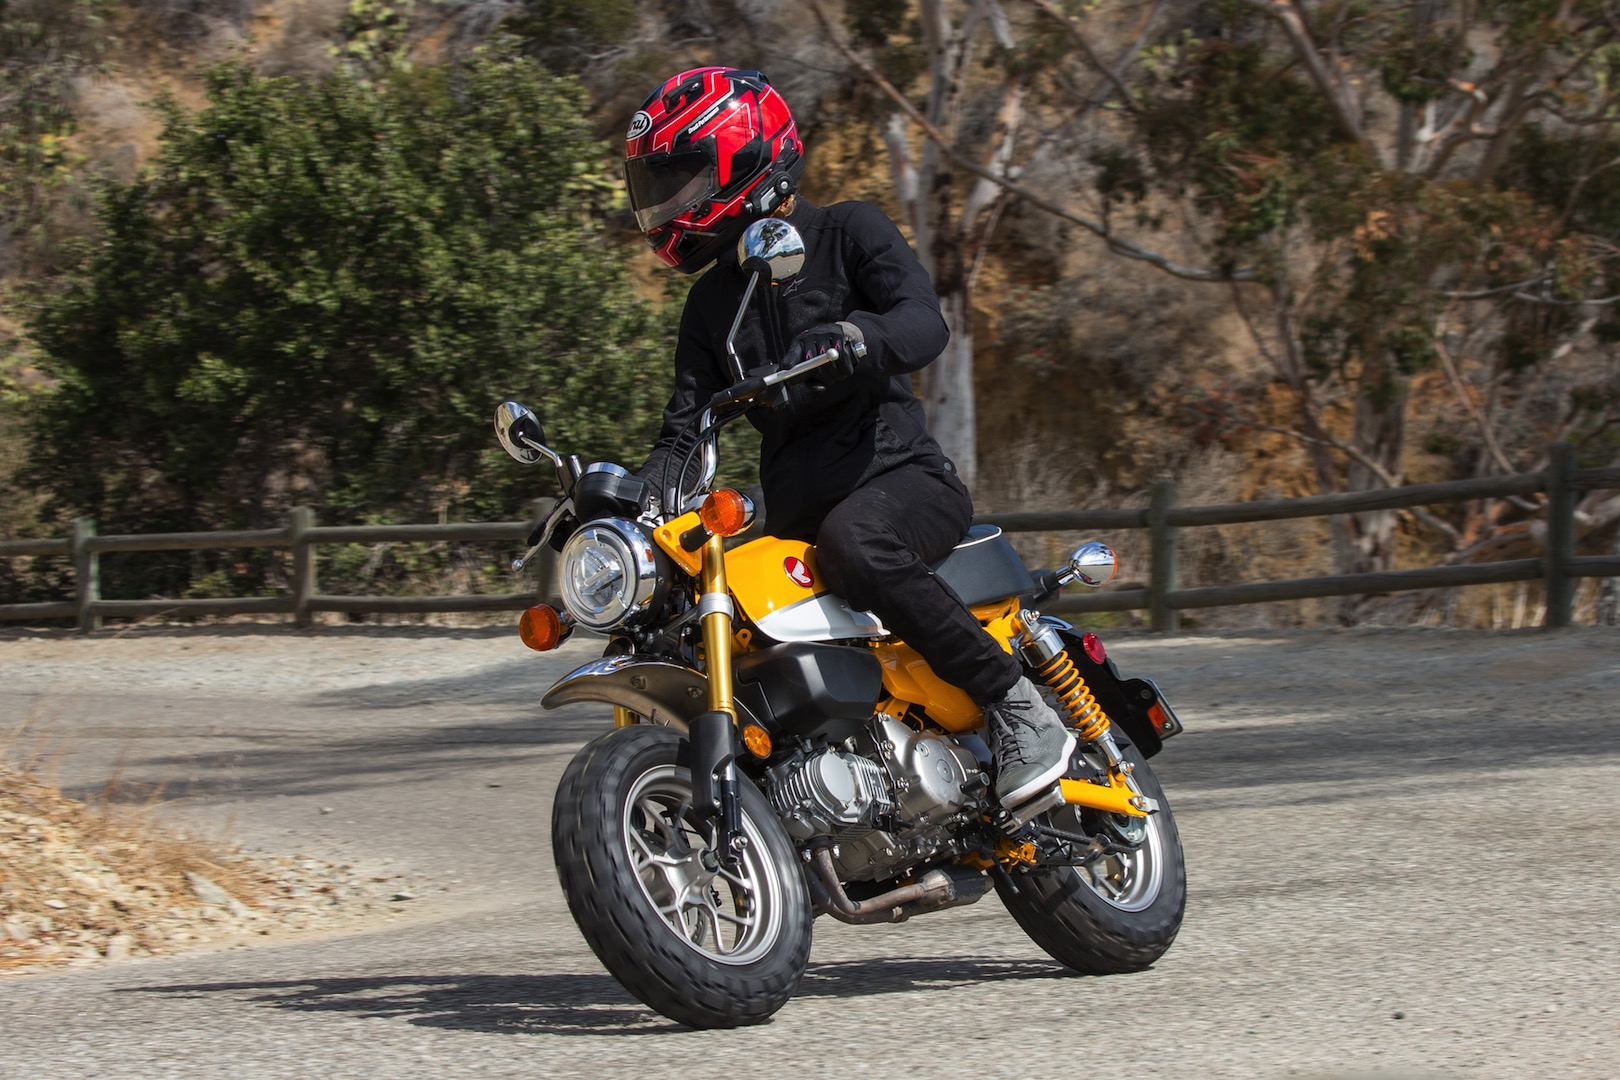 2019 Honda Monkey MSRP